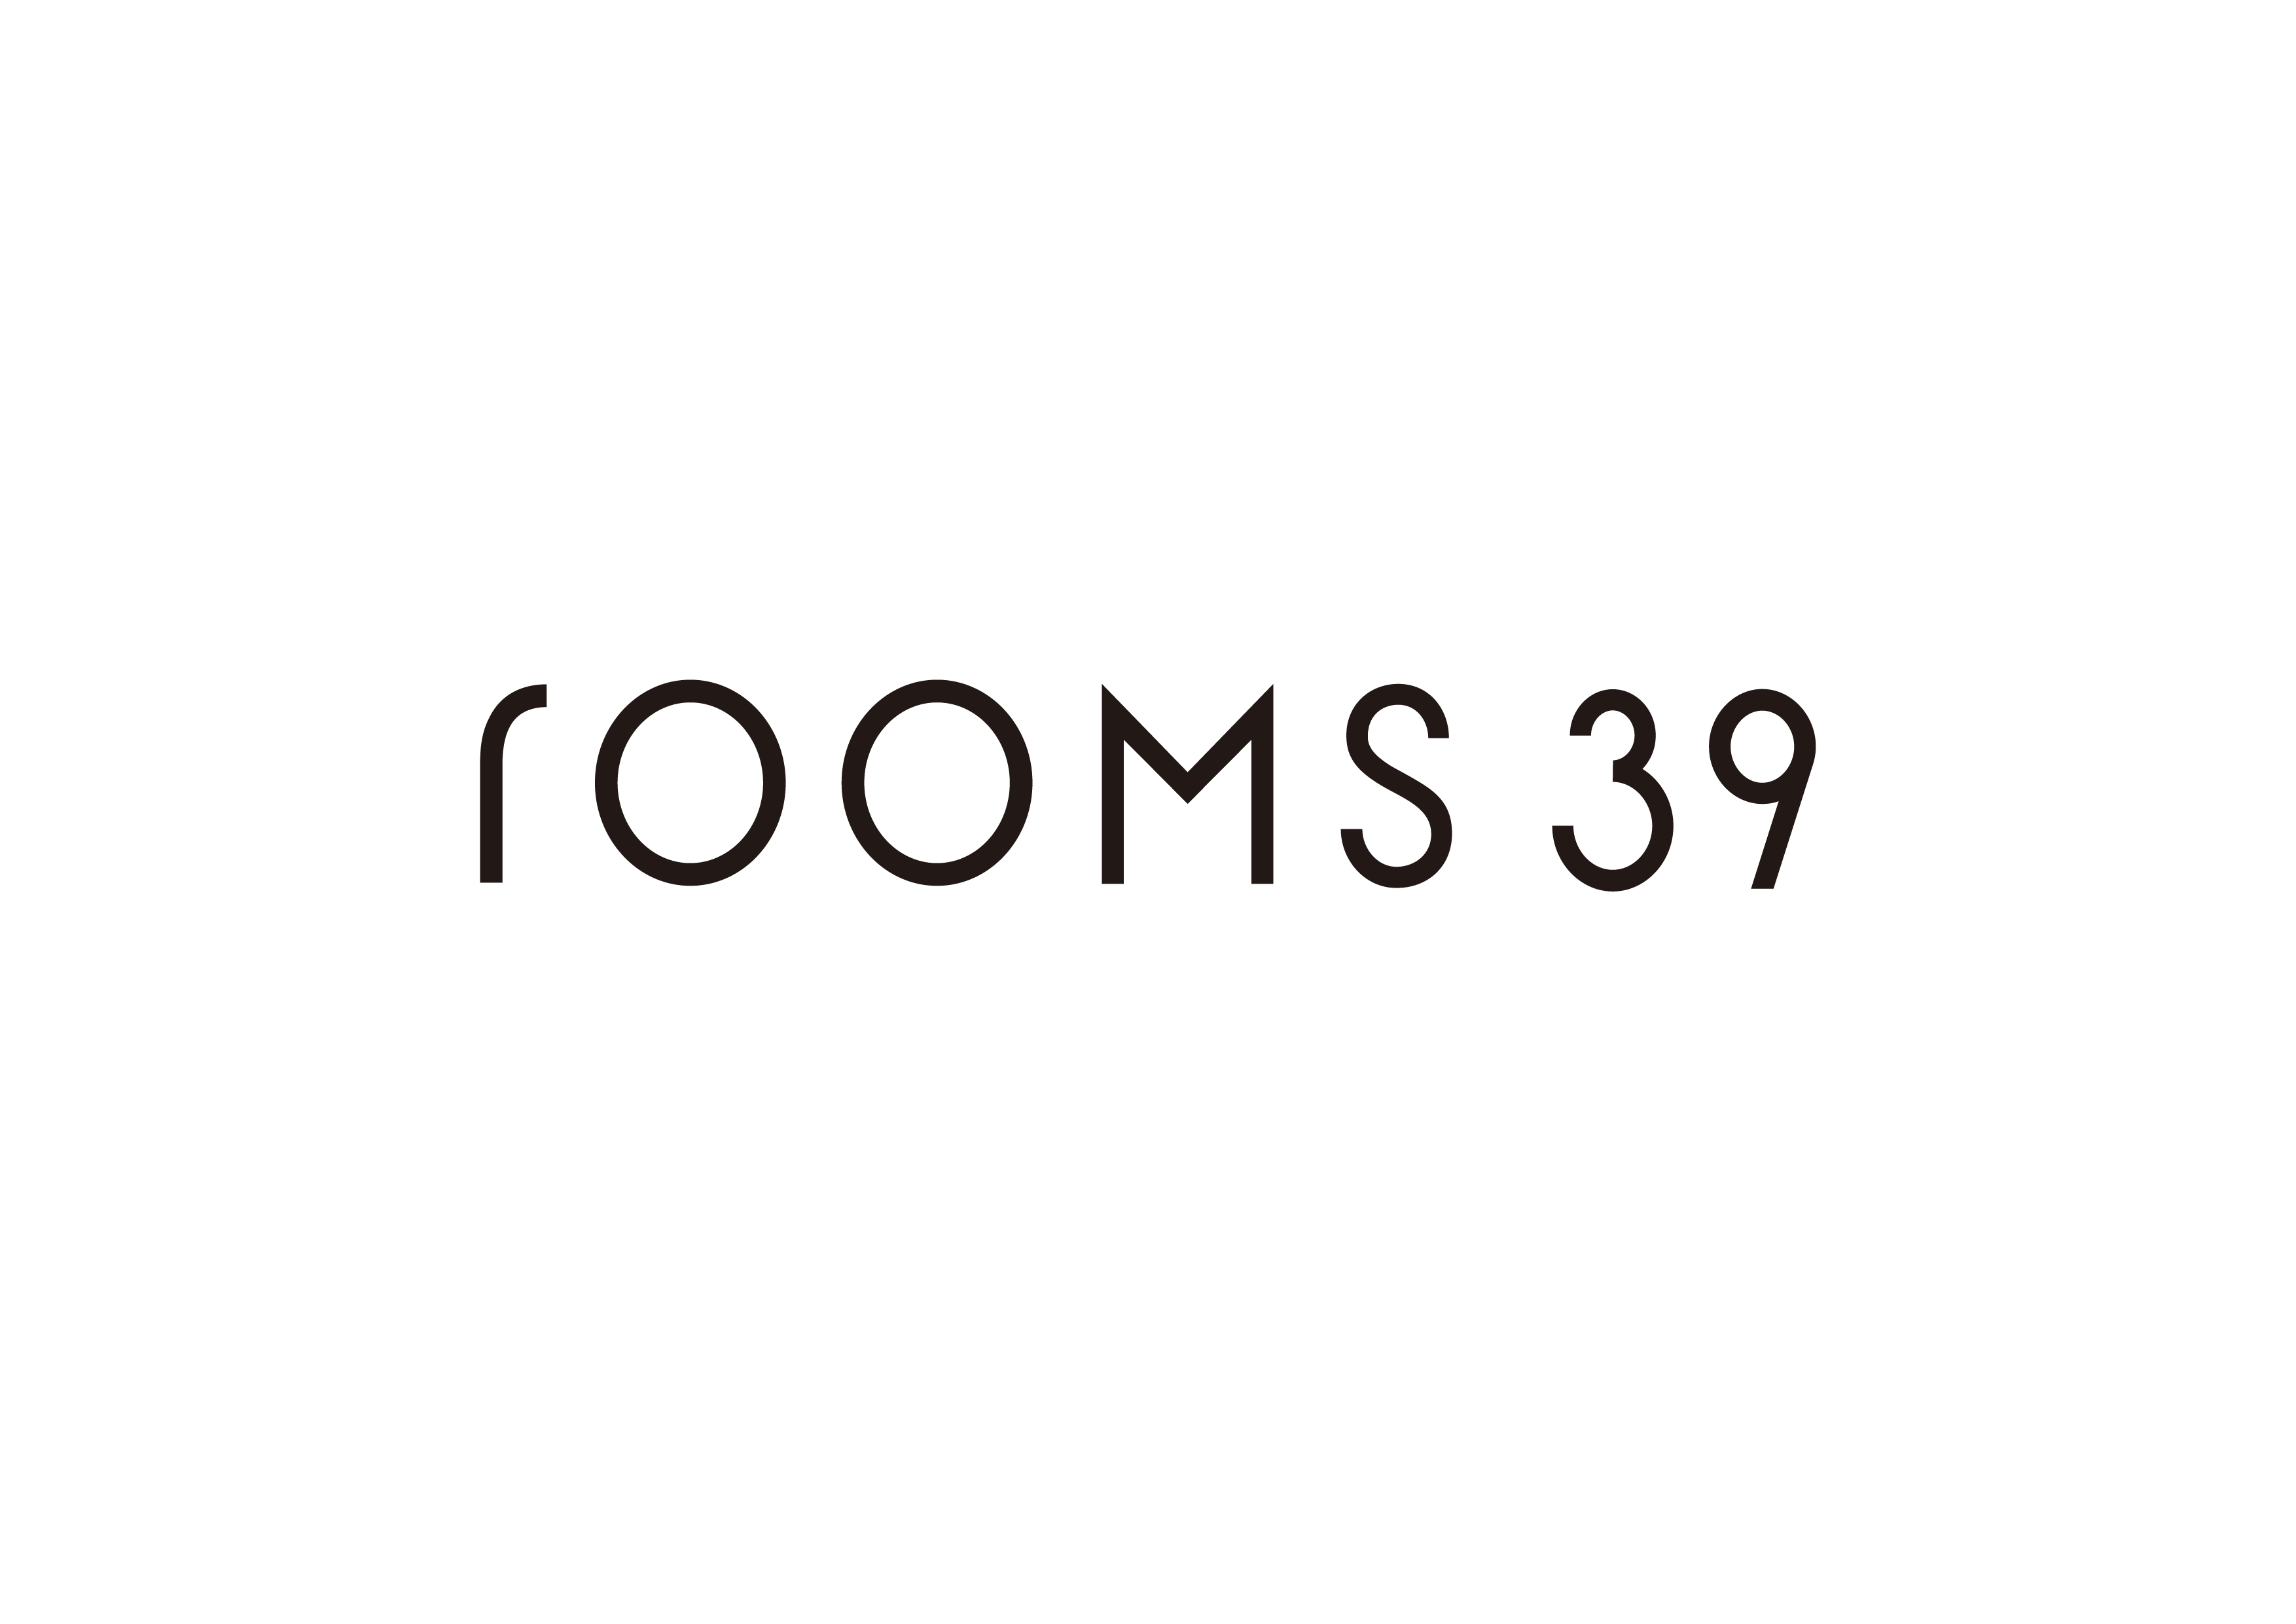 rooms39